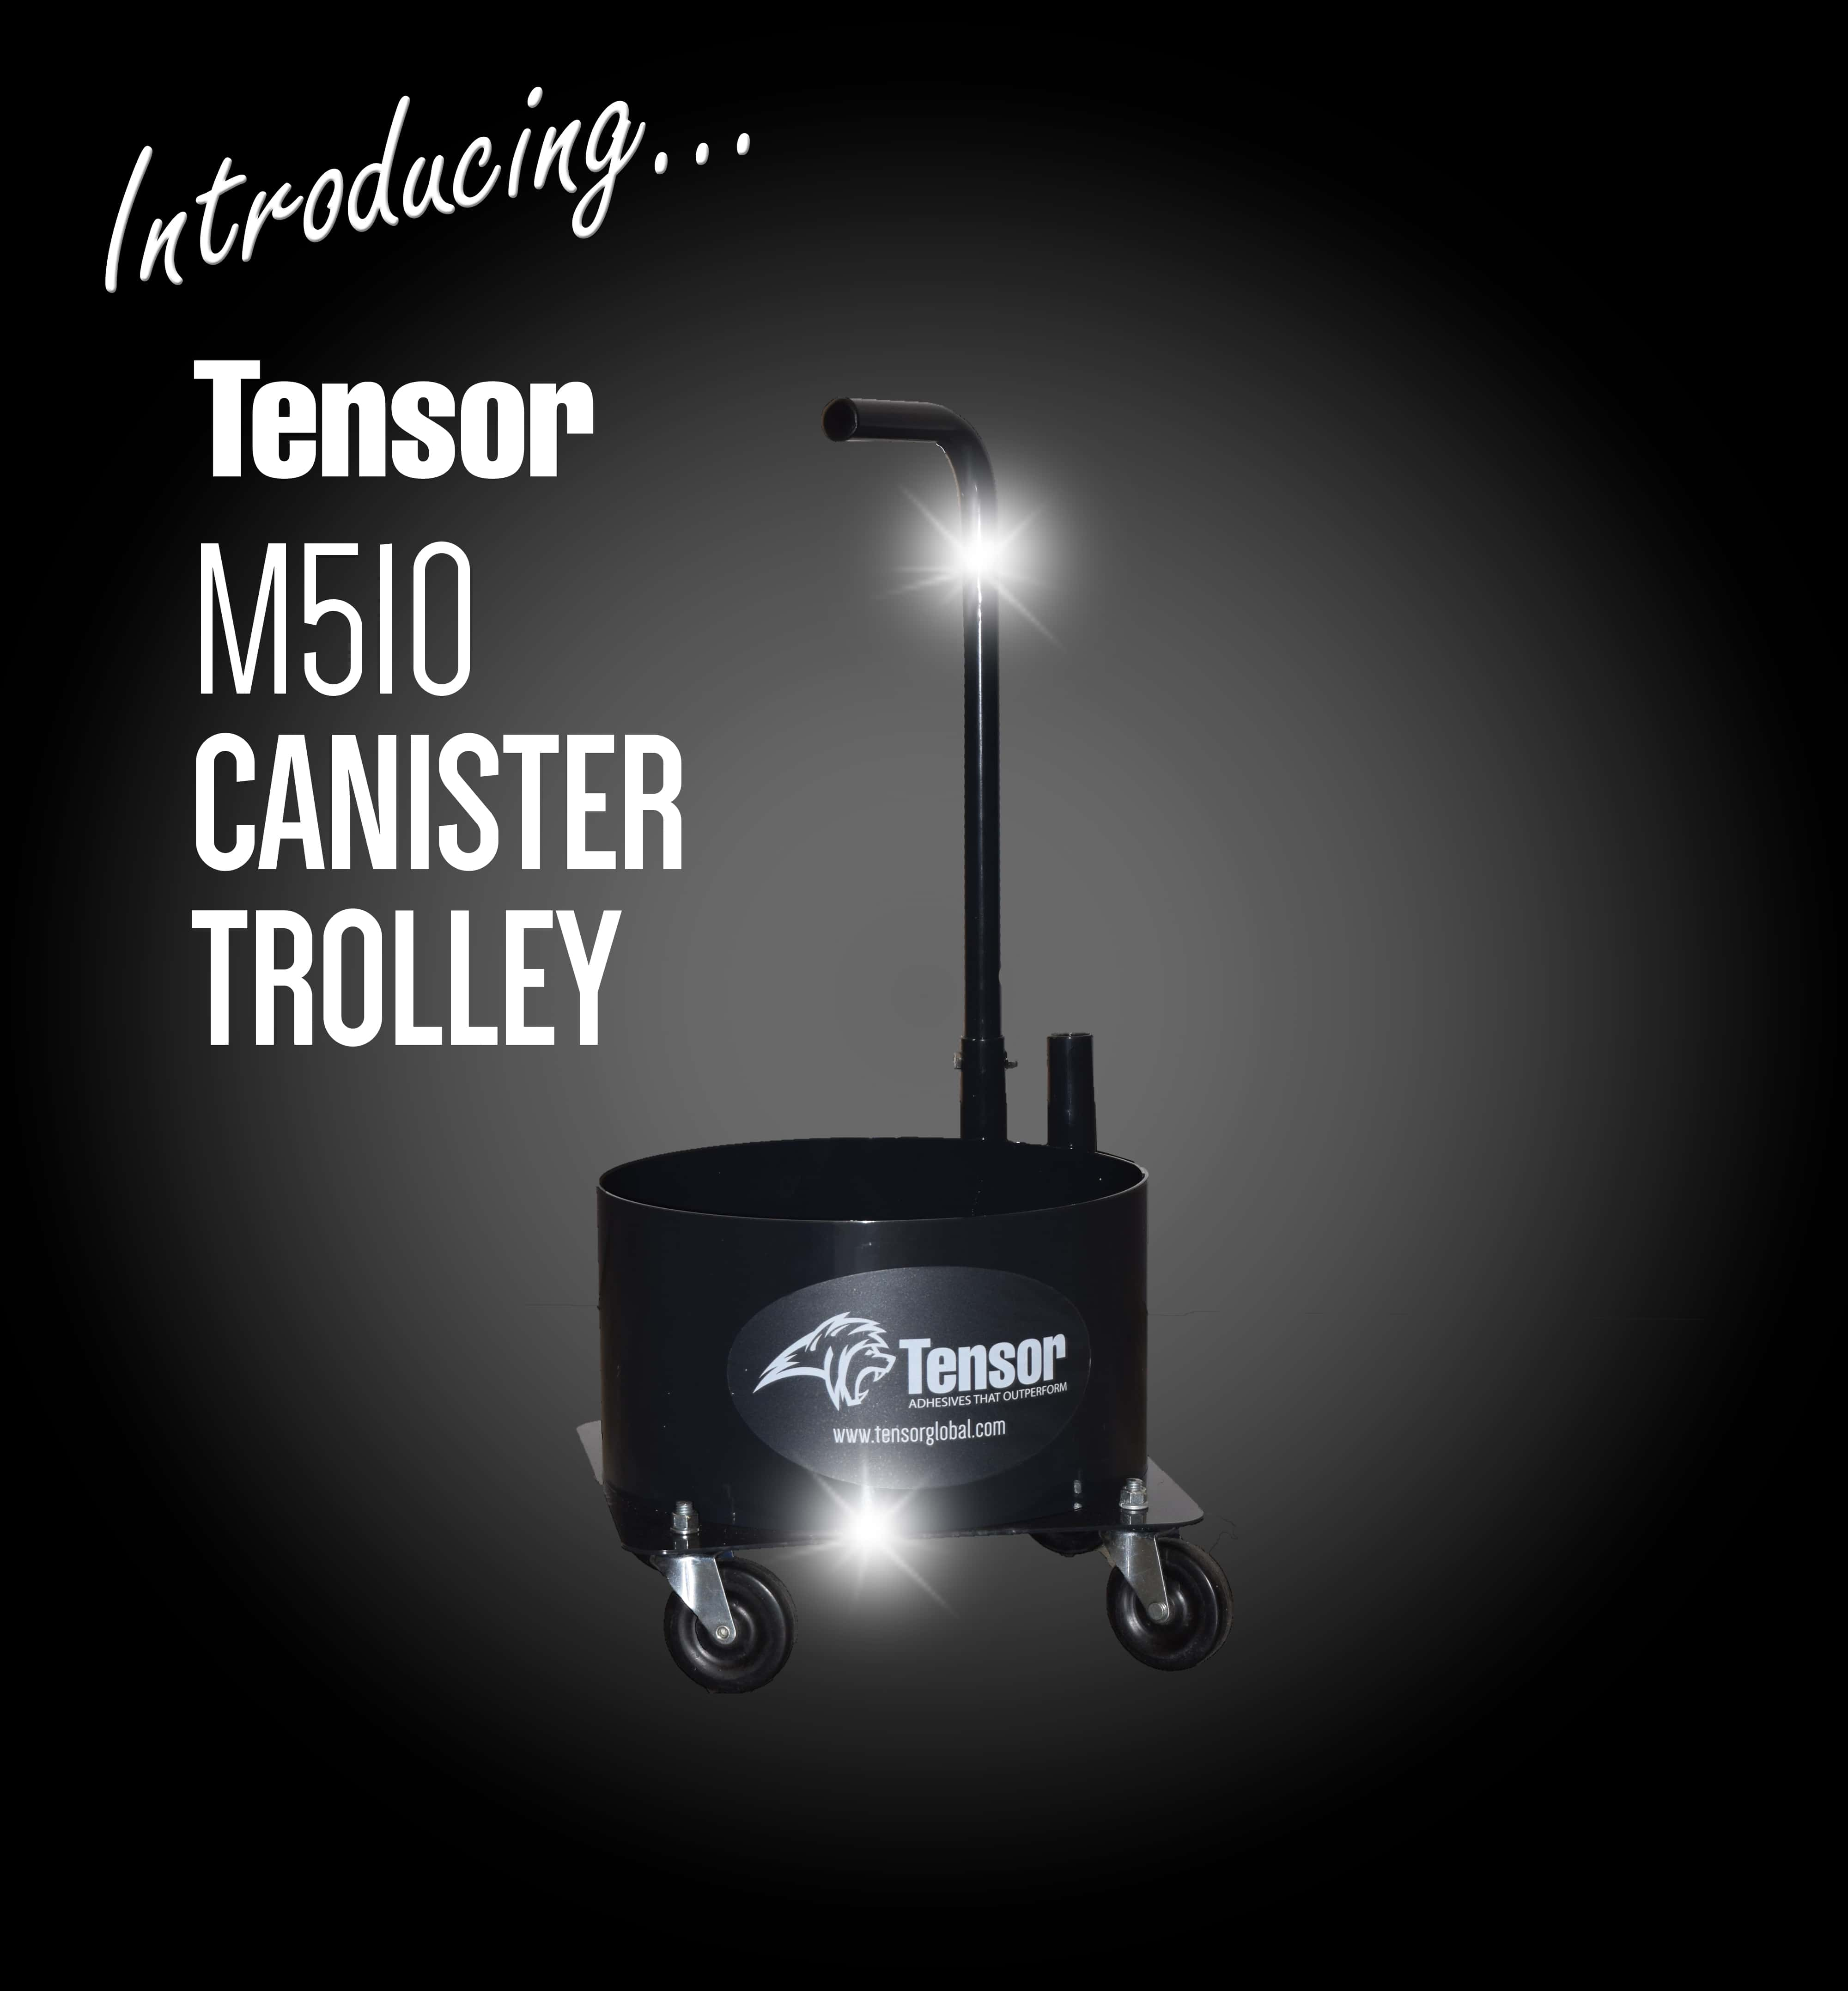 Tensor 510 Canister Trolley